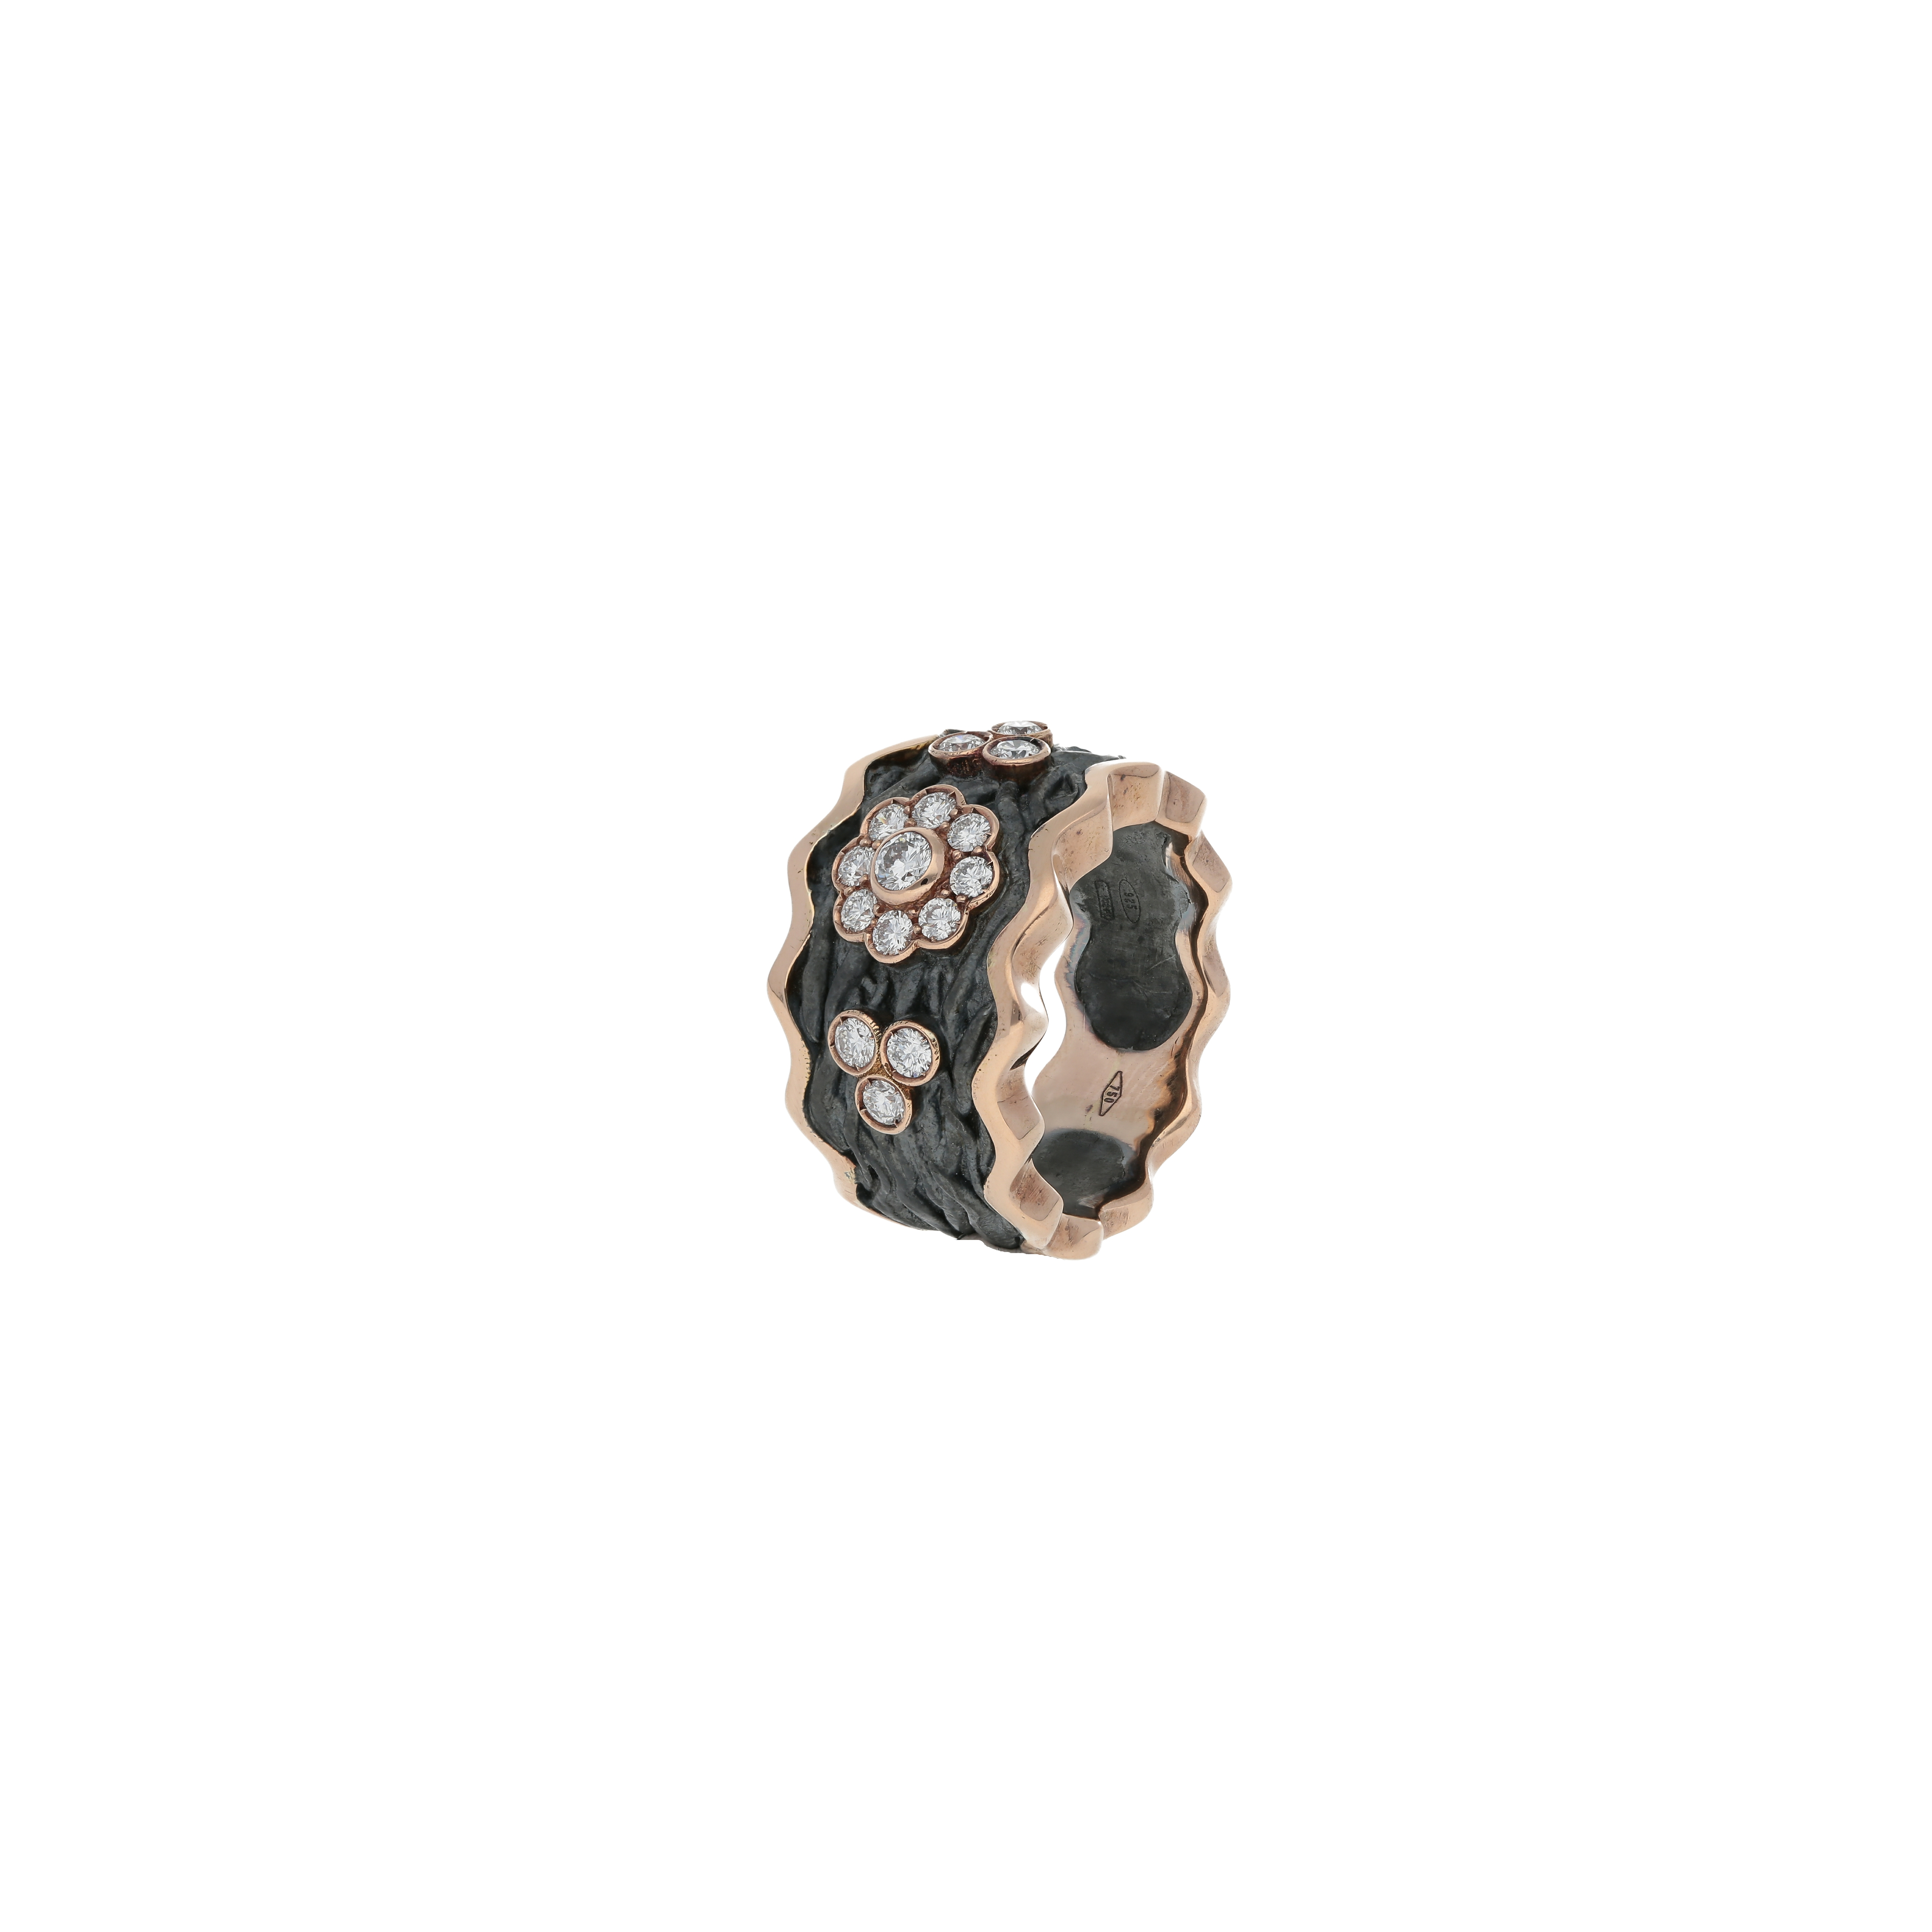 roots collection flower ring oxidized silve 18kt rose gold and diamonds